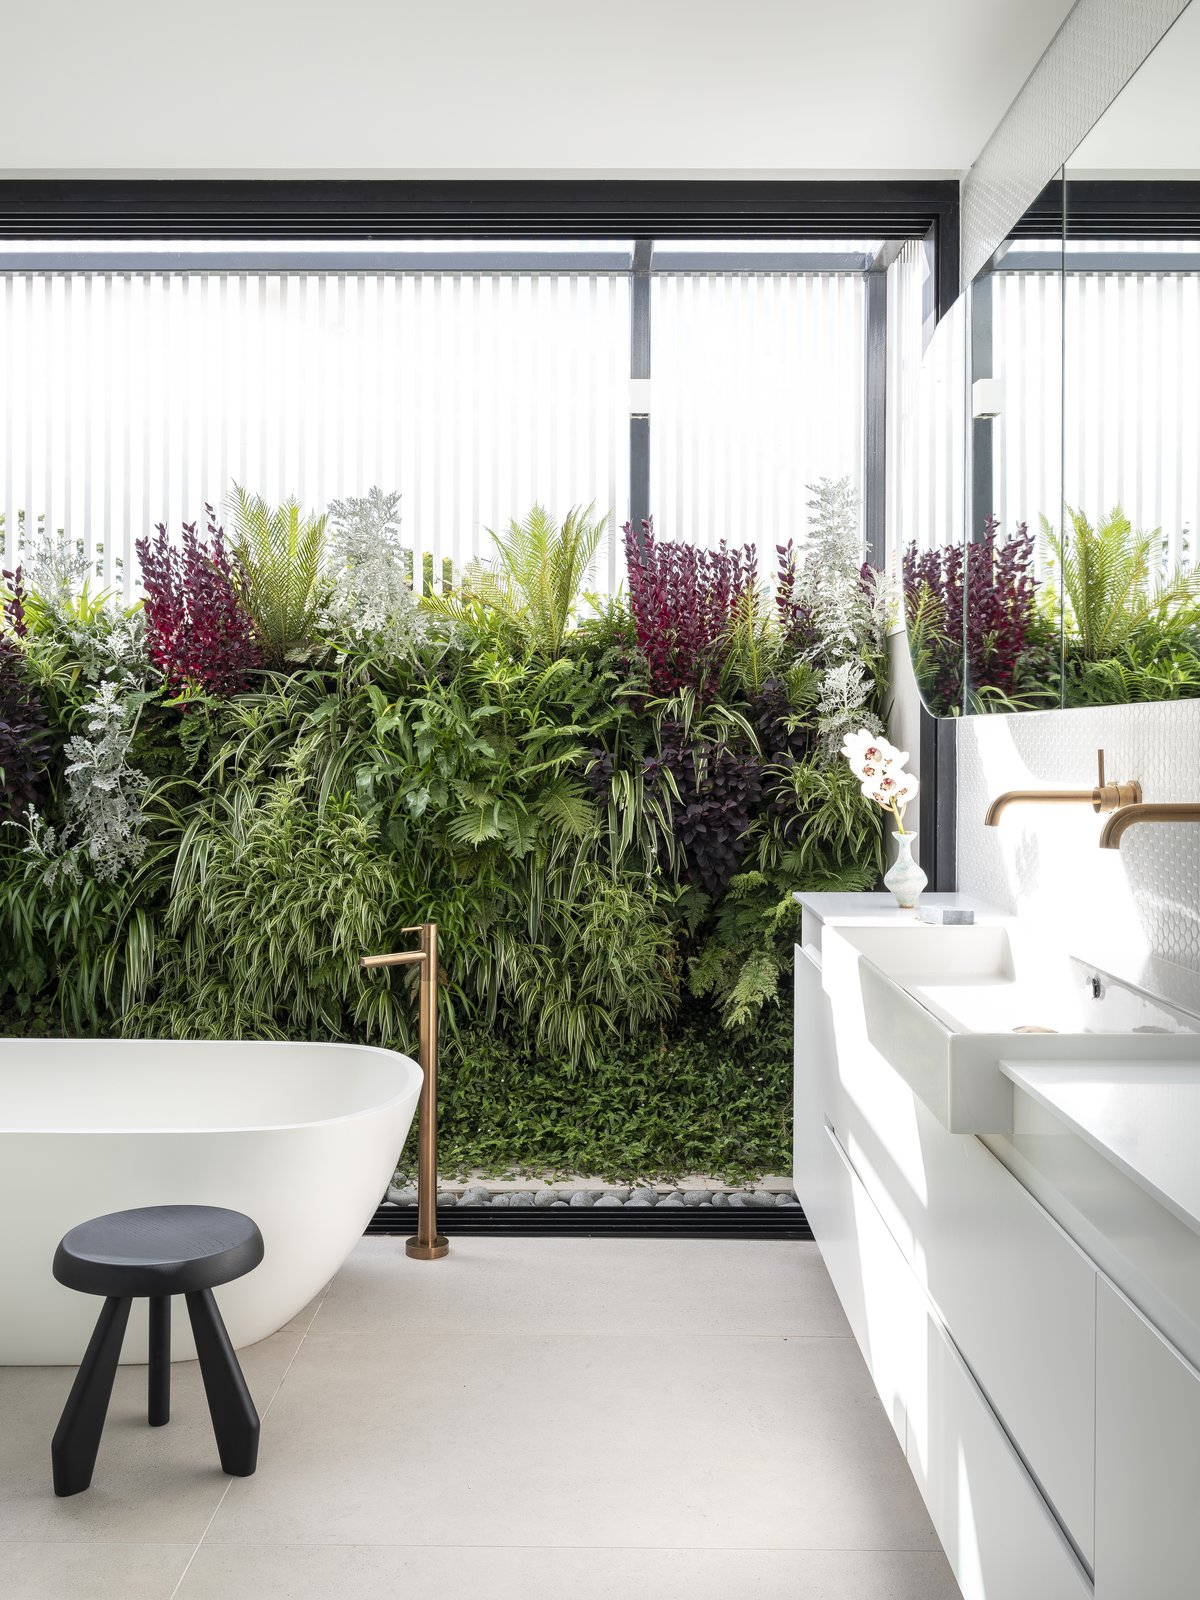 Green wall and bathroom in Higher Ground by Stafford Architecture